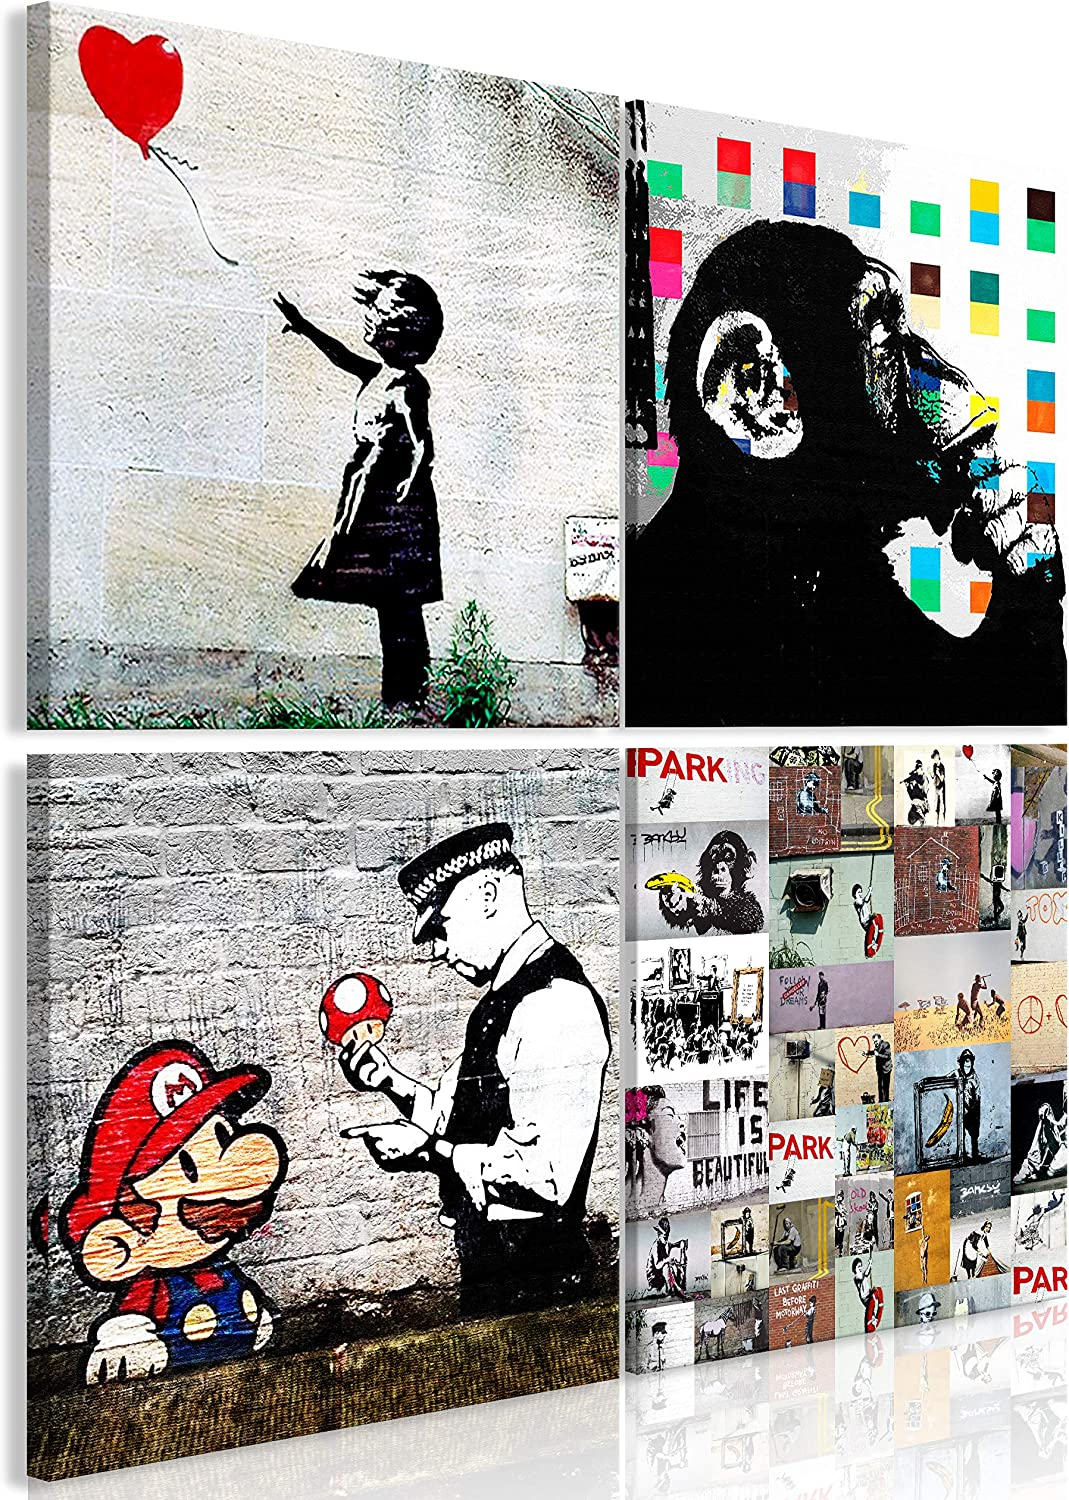 Murando Canvas Wall Art Banksy 90x90 Cm 34 5 X34 5 Non Woven Canvas Prints Image Framed Artwork Painting Picture Photo Home Decoration 4 Pieces Black White Monkey Mario I B 0057 B A Amazon Co Uk Welcome